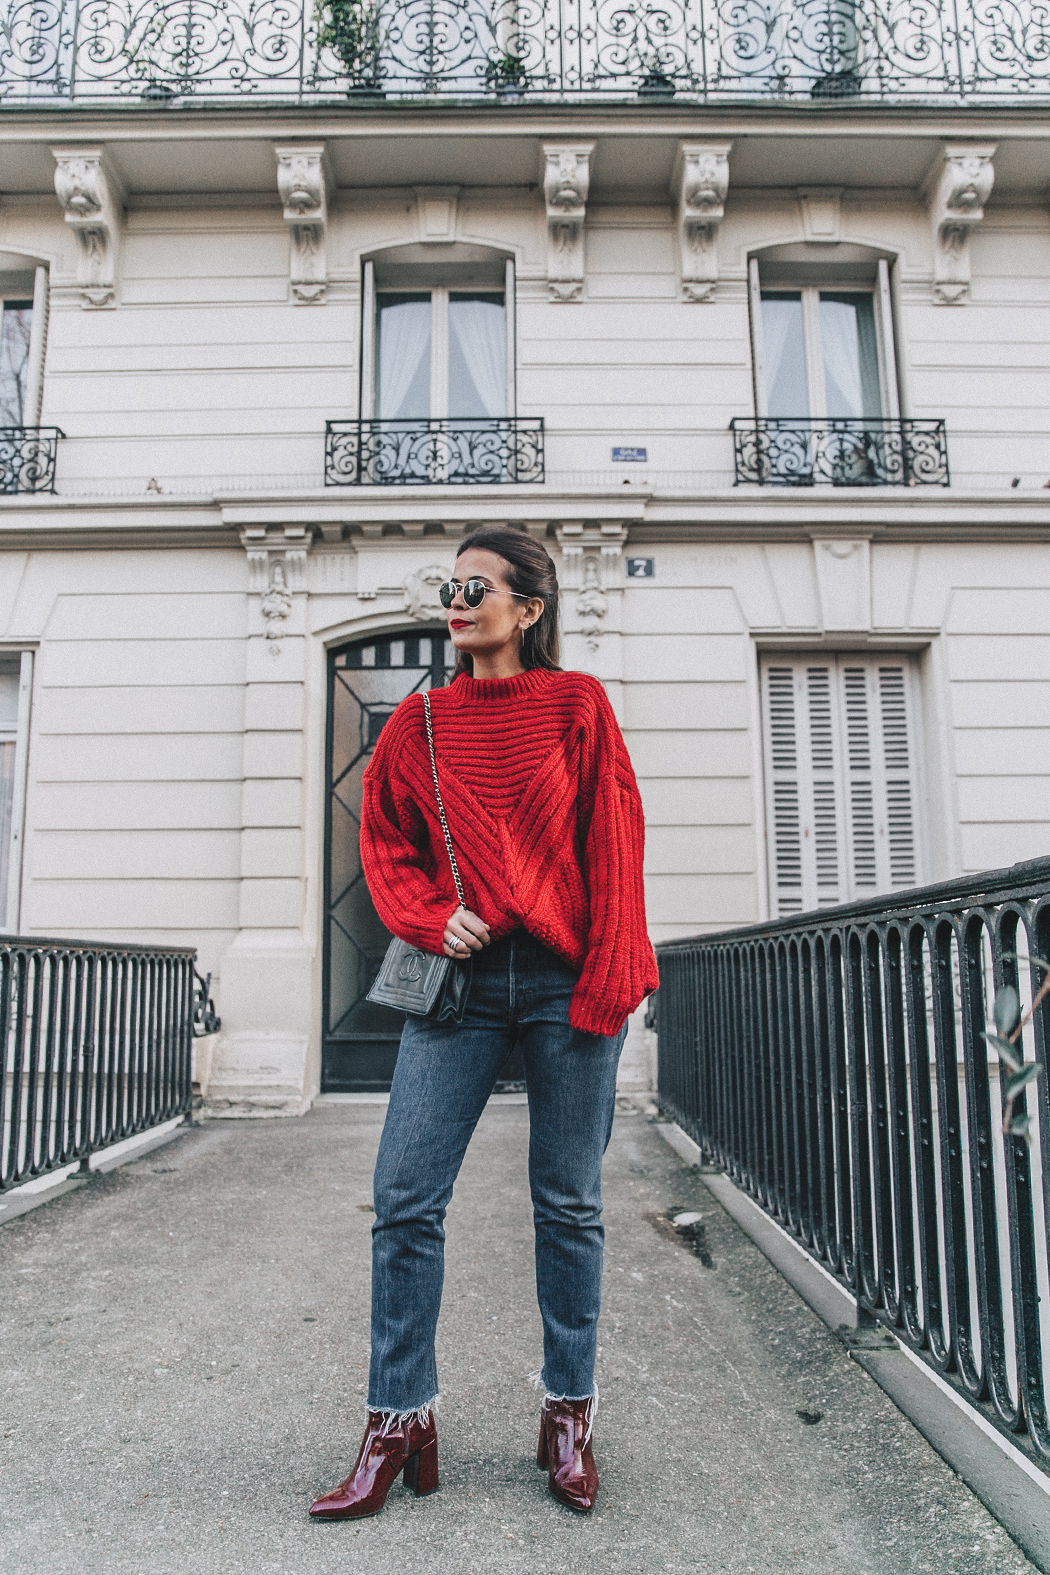 RED-KNITWEAR-Levis-Jeans-Red_Boots-Outfit-Street_Style-Levis_Vintage-11